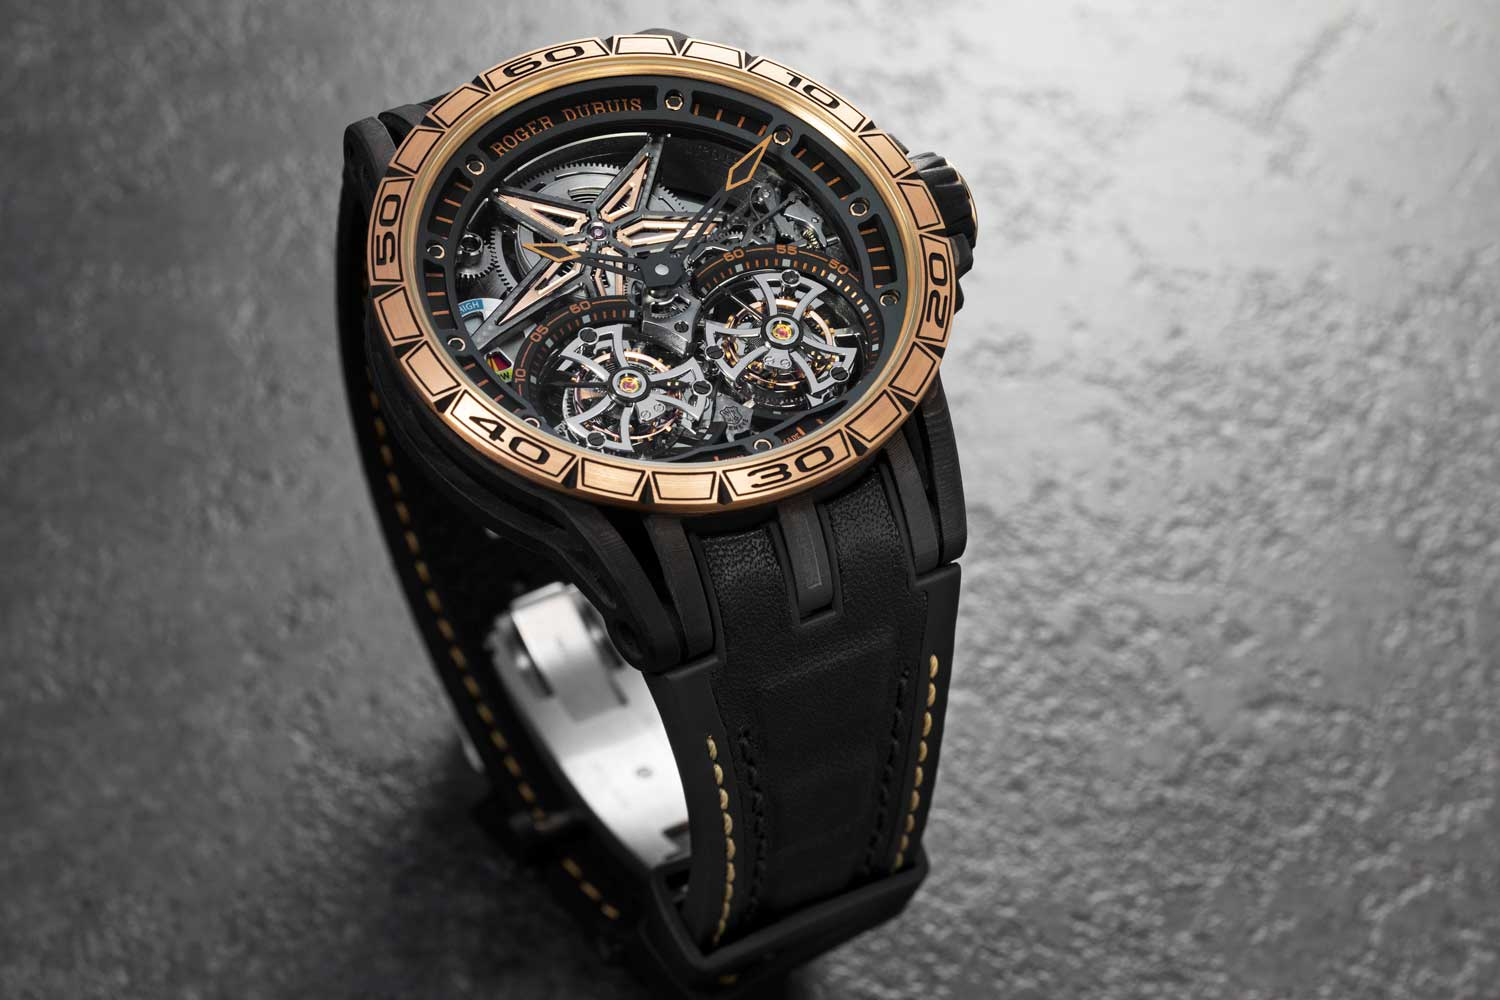 Roger Dubuis Excalibur Spider Carbon and Gold Double Flying Tourbillon (Image © Revolution)